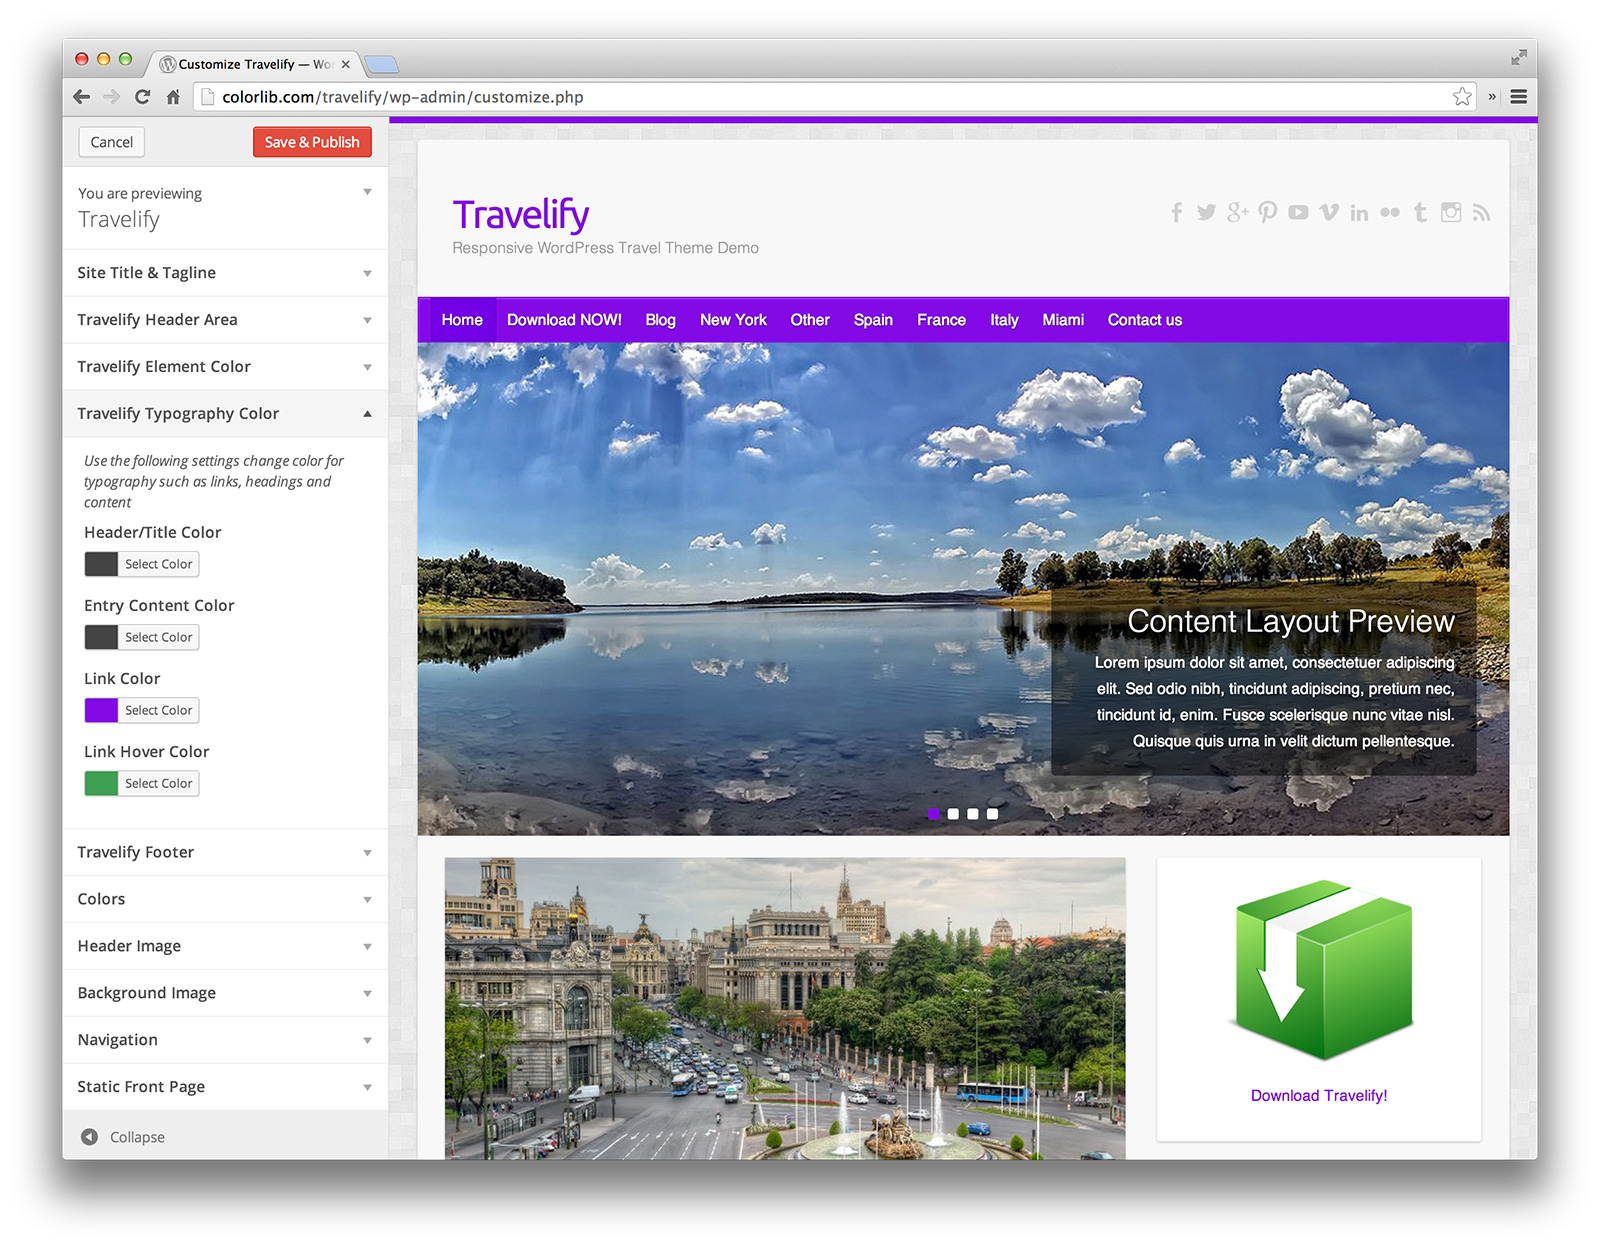 Travelify - change color